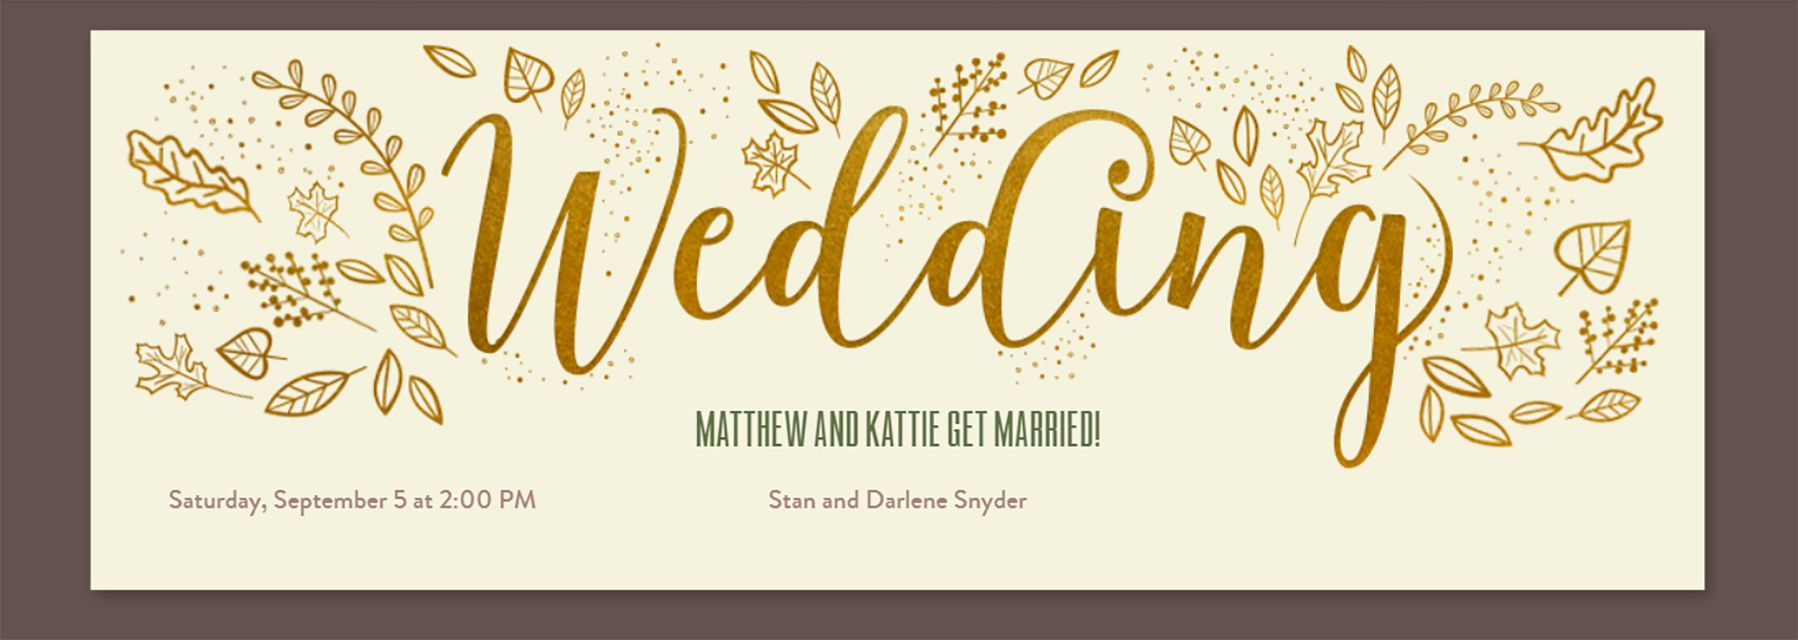 A brown and gold online wedding invite with fall leaves drawn on it